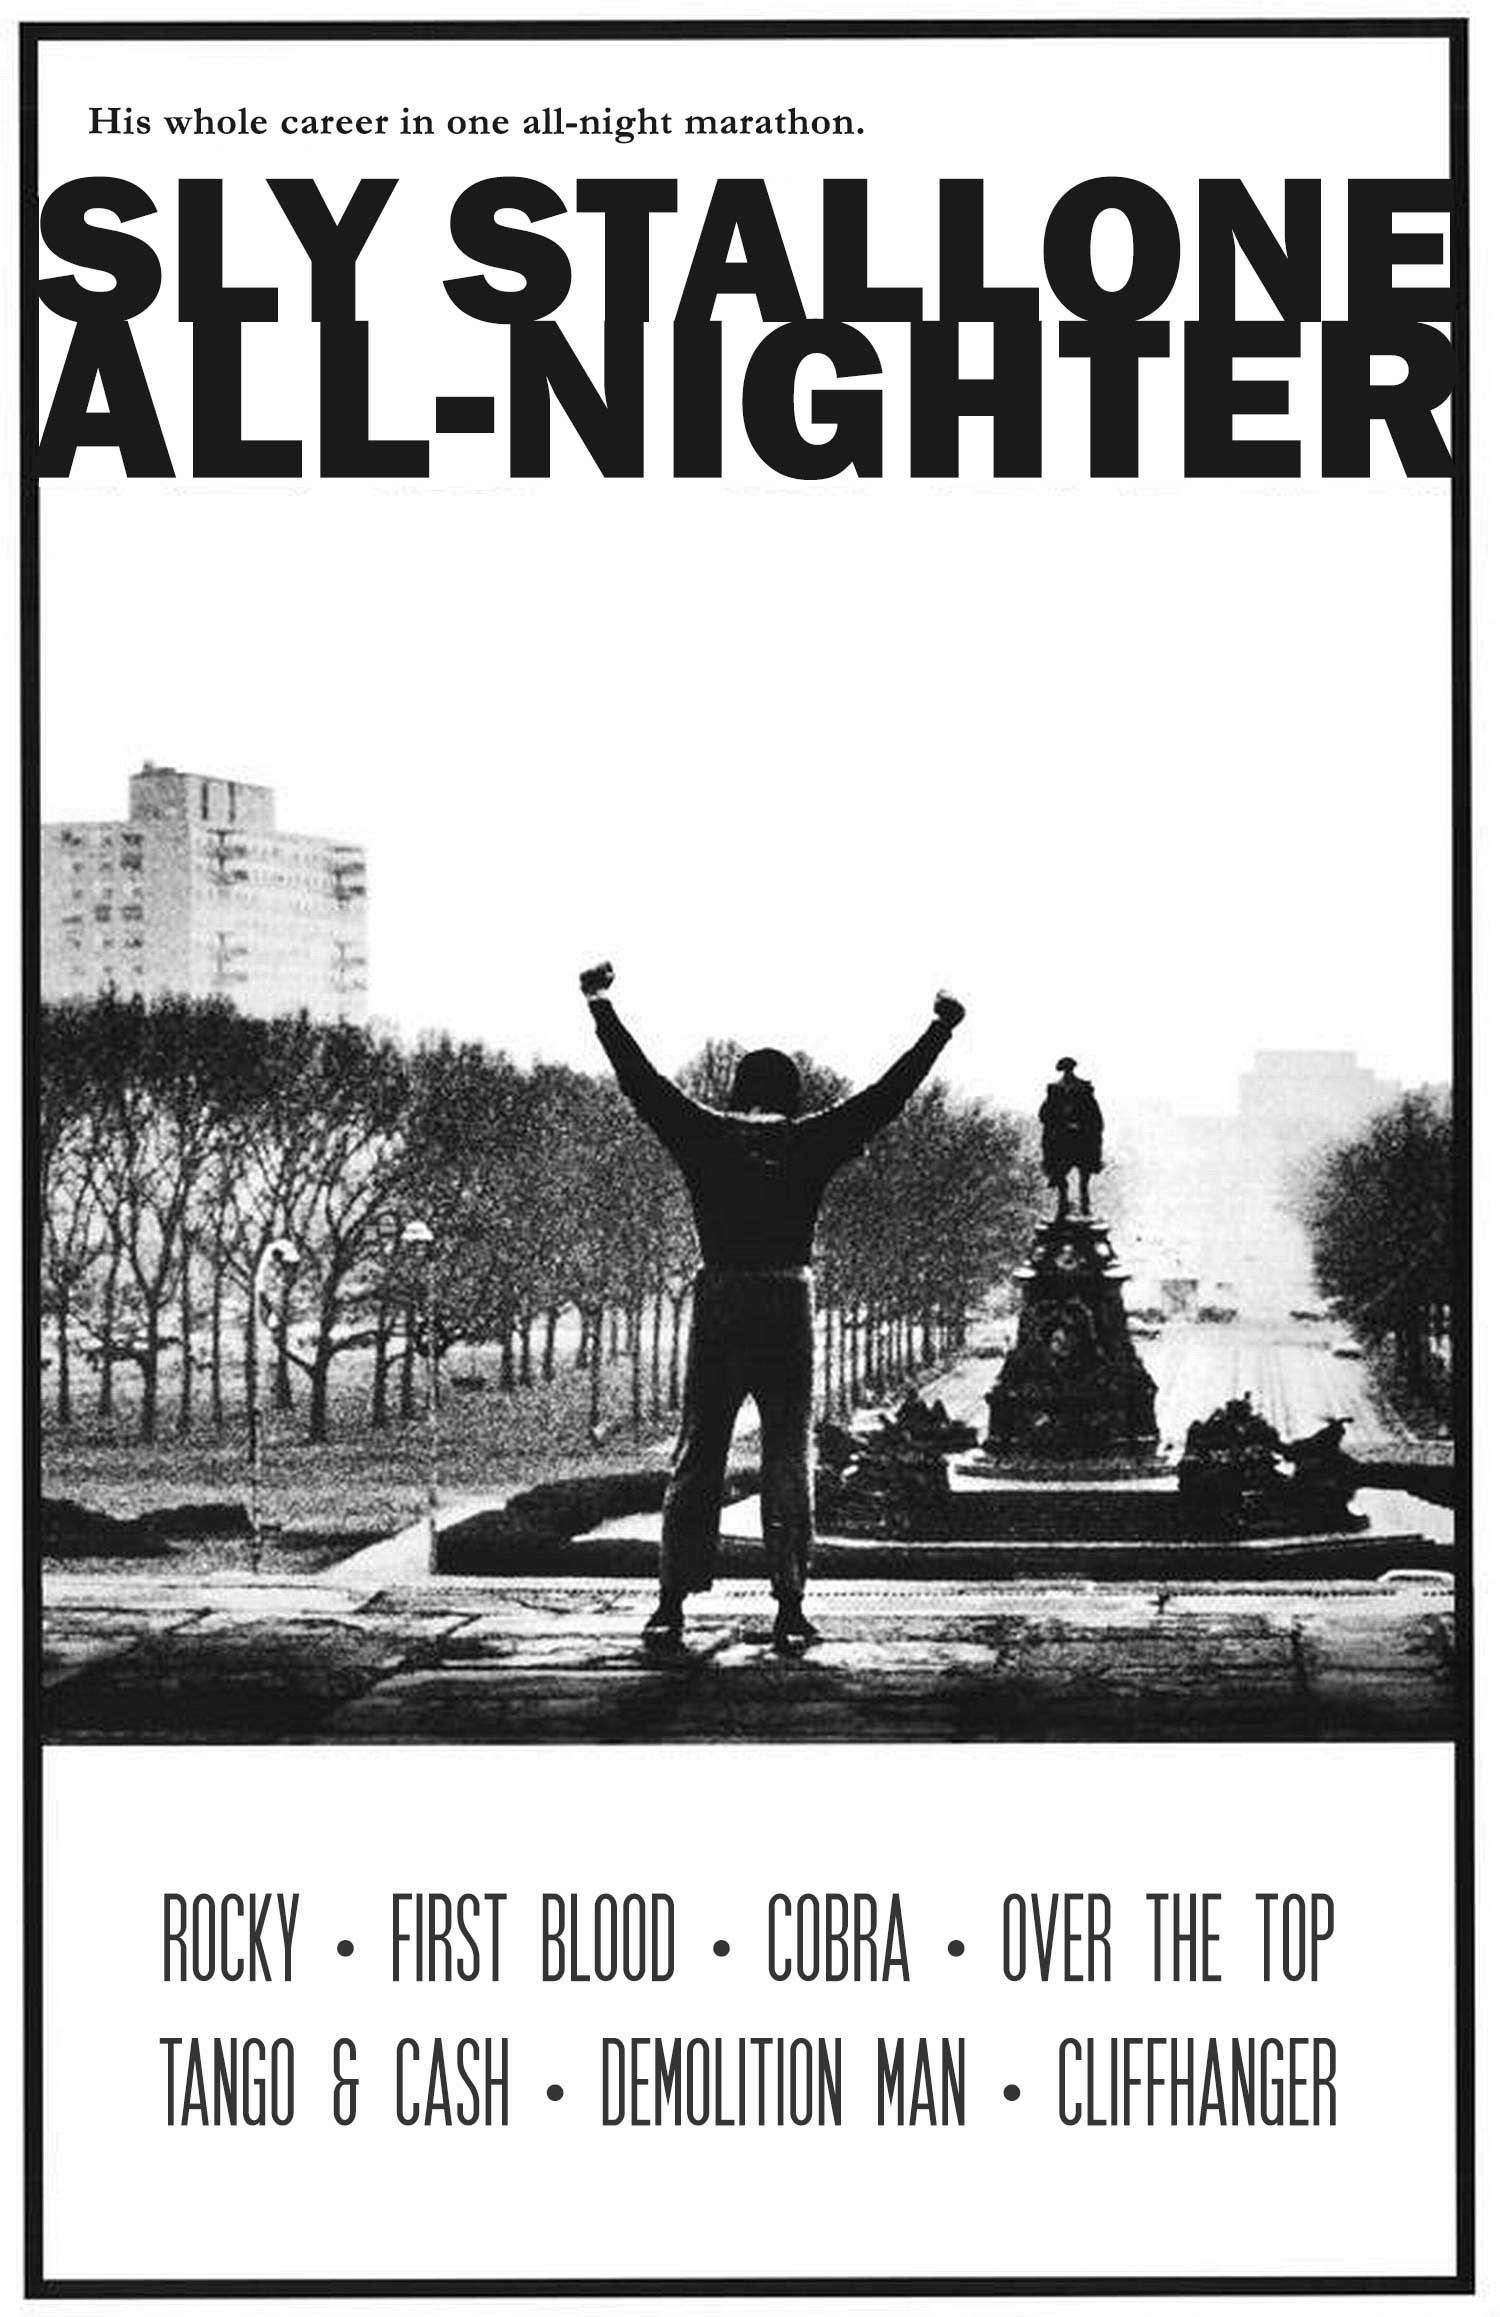 SLY STALLONE ALL-NIGHTER